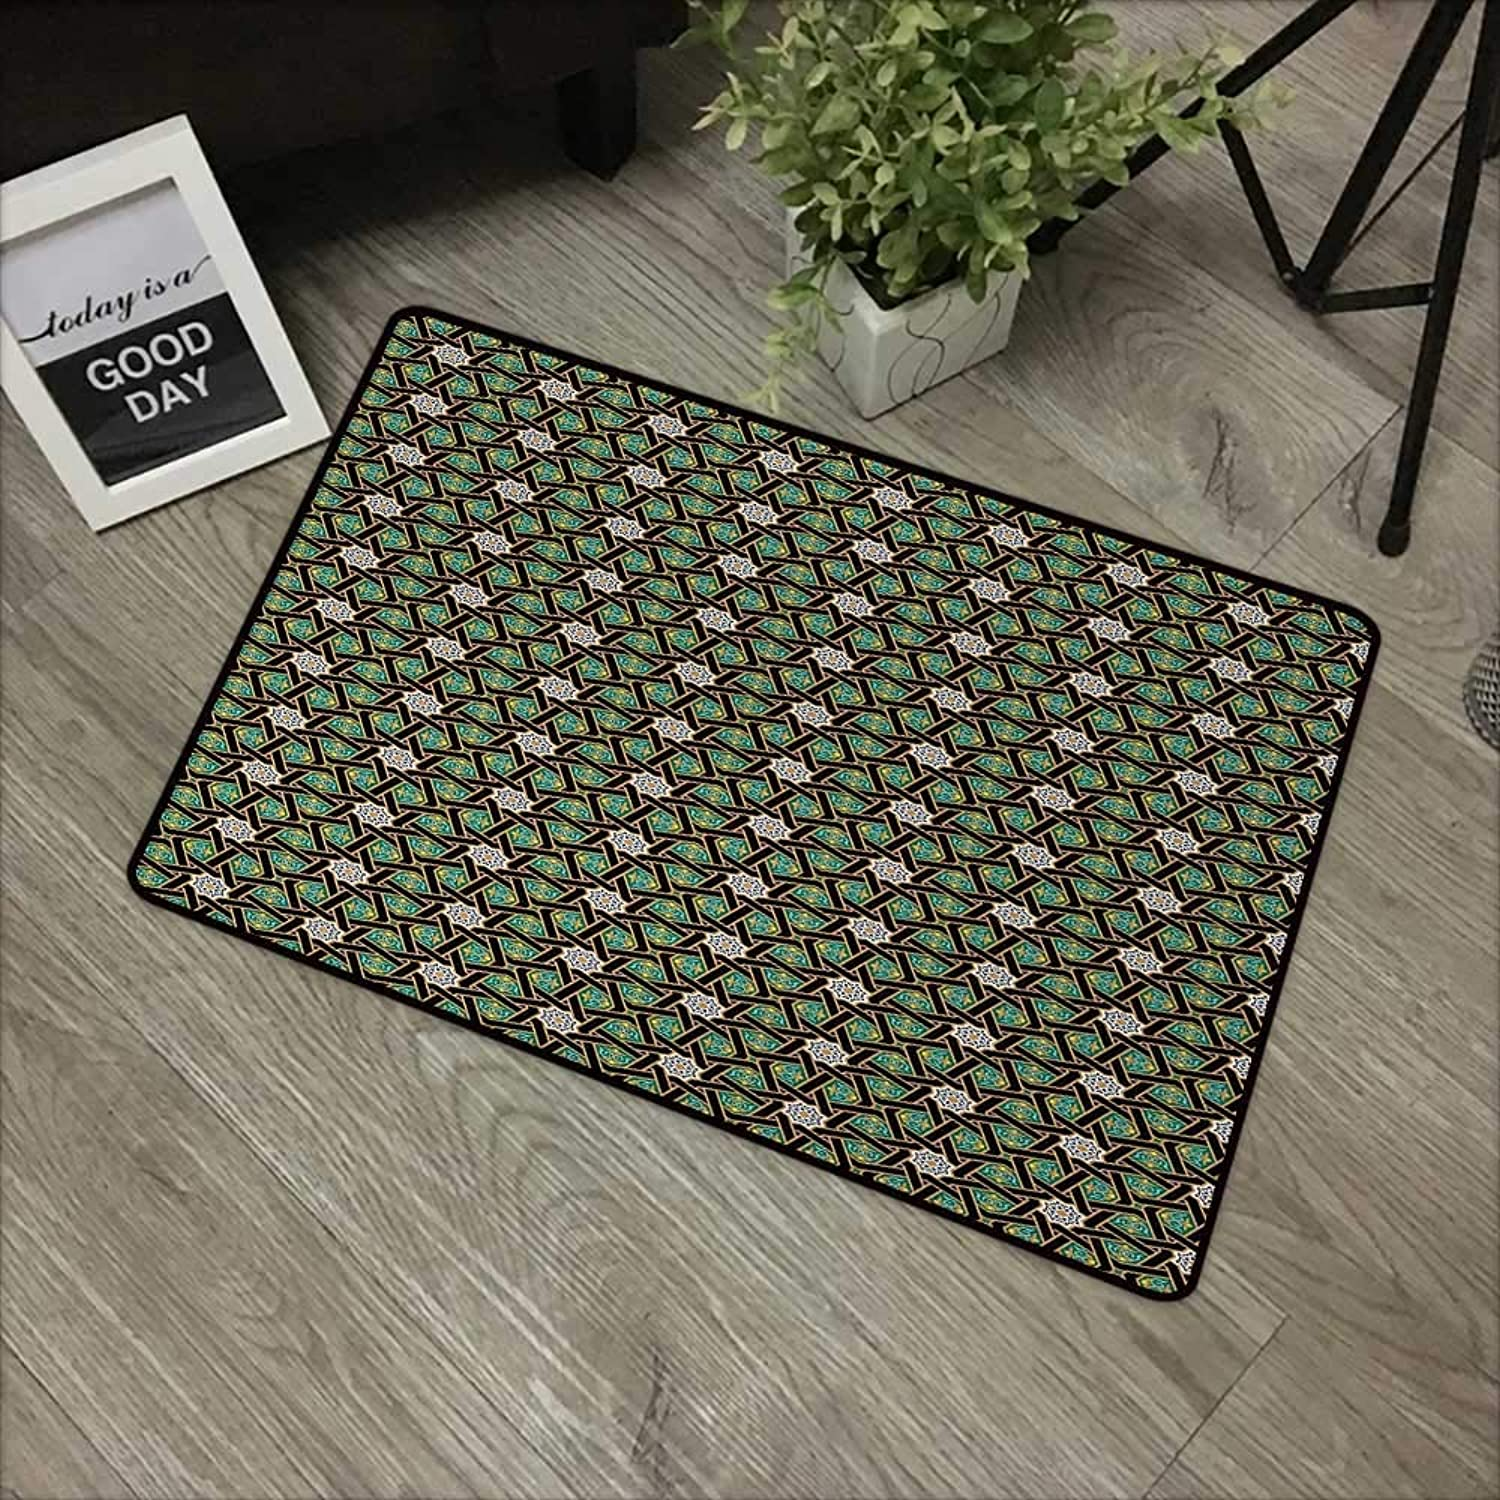 Interior Door mat W35 x L59 INCH Oriental,Traditional Arabesque Pattern with Stripes Ornamental Geometric Design,Fern Green Black Camel with Non-Slip Backing Door Mat Carpet